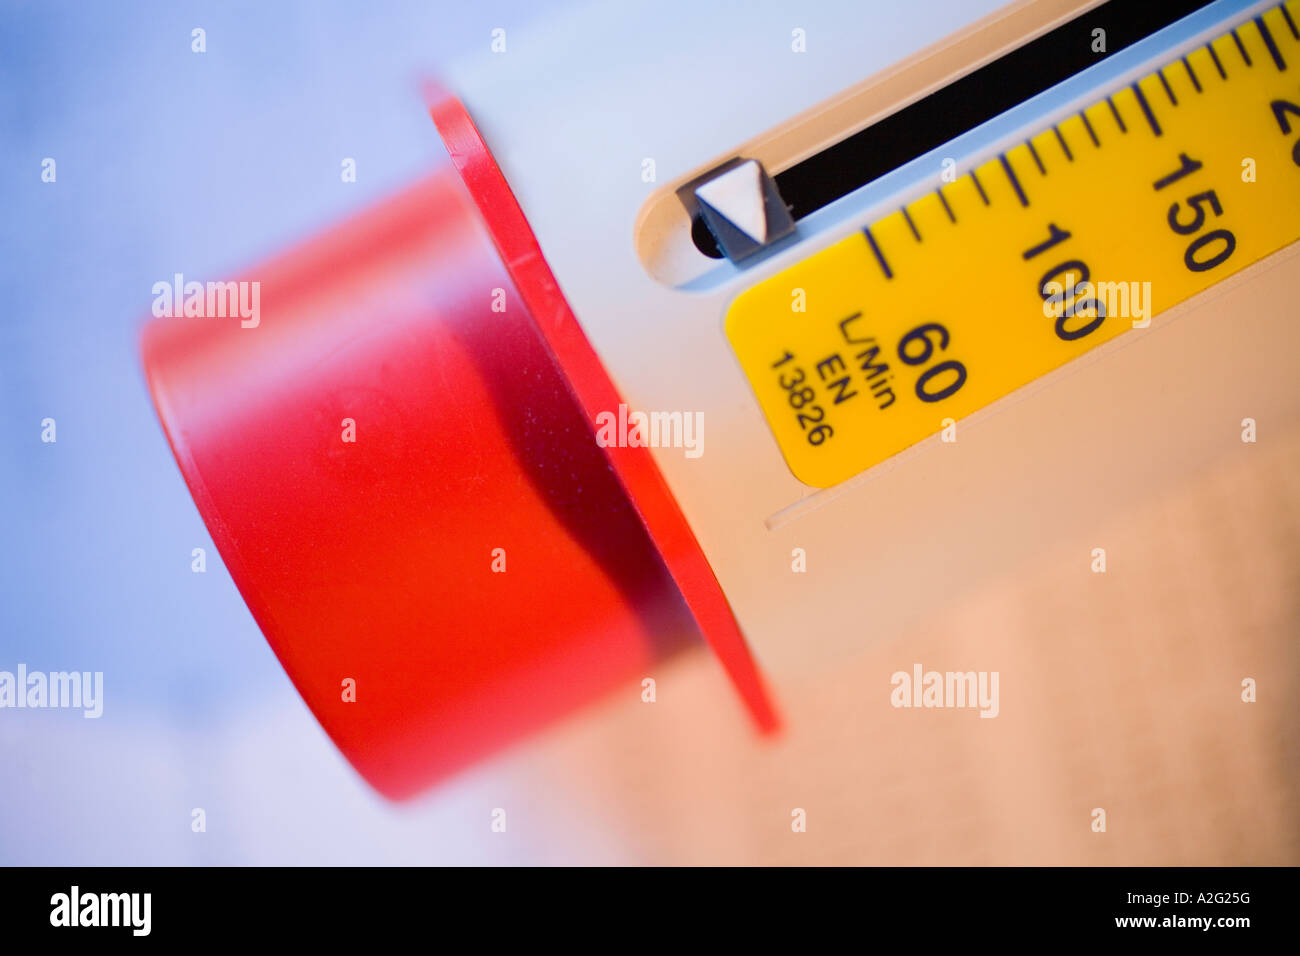 Peak flow meter use stock photos peak flow meter use stock peak flow meter european scale medical instrument used to measure severity of asthma lung disease nvjuhfo Choice Image